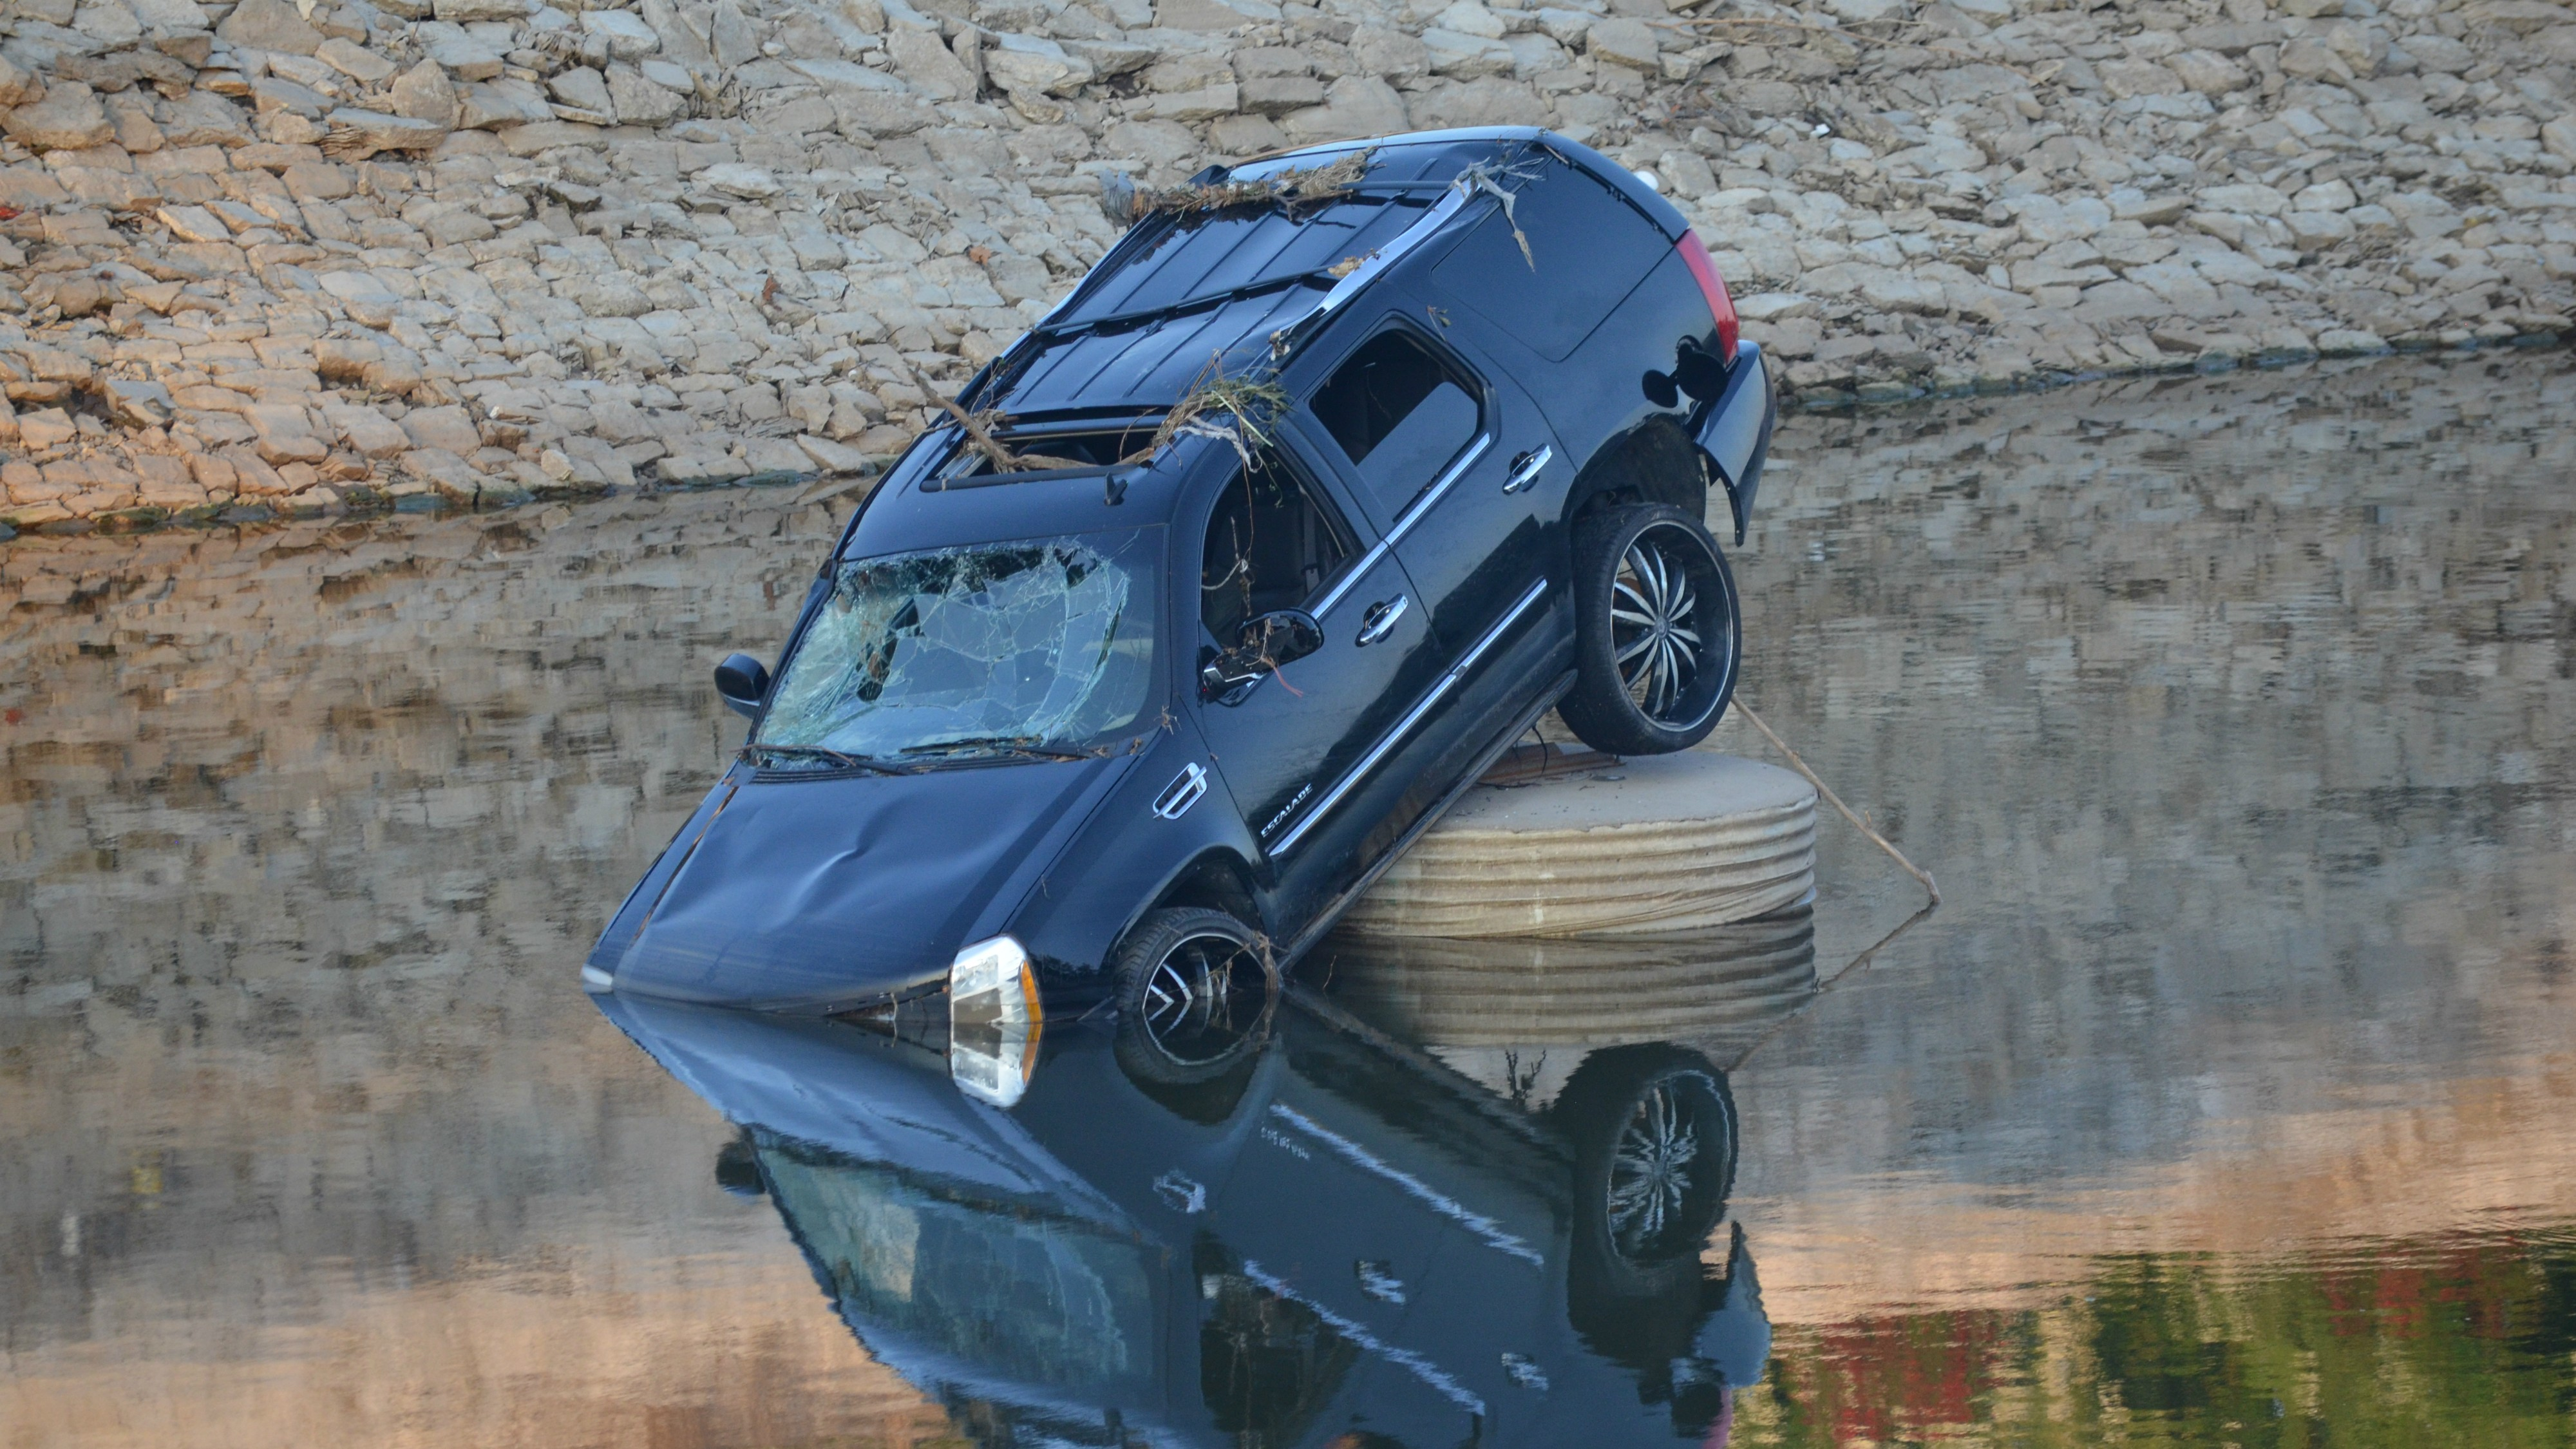 How Many Cars Are in the River Des Peres?